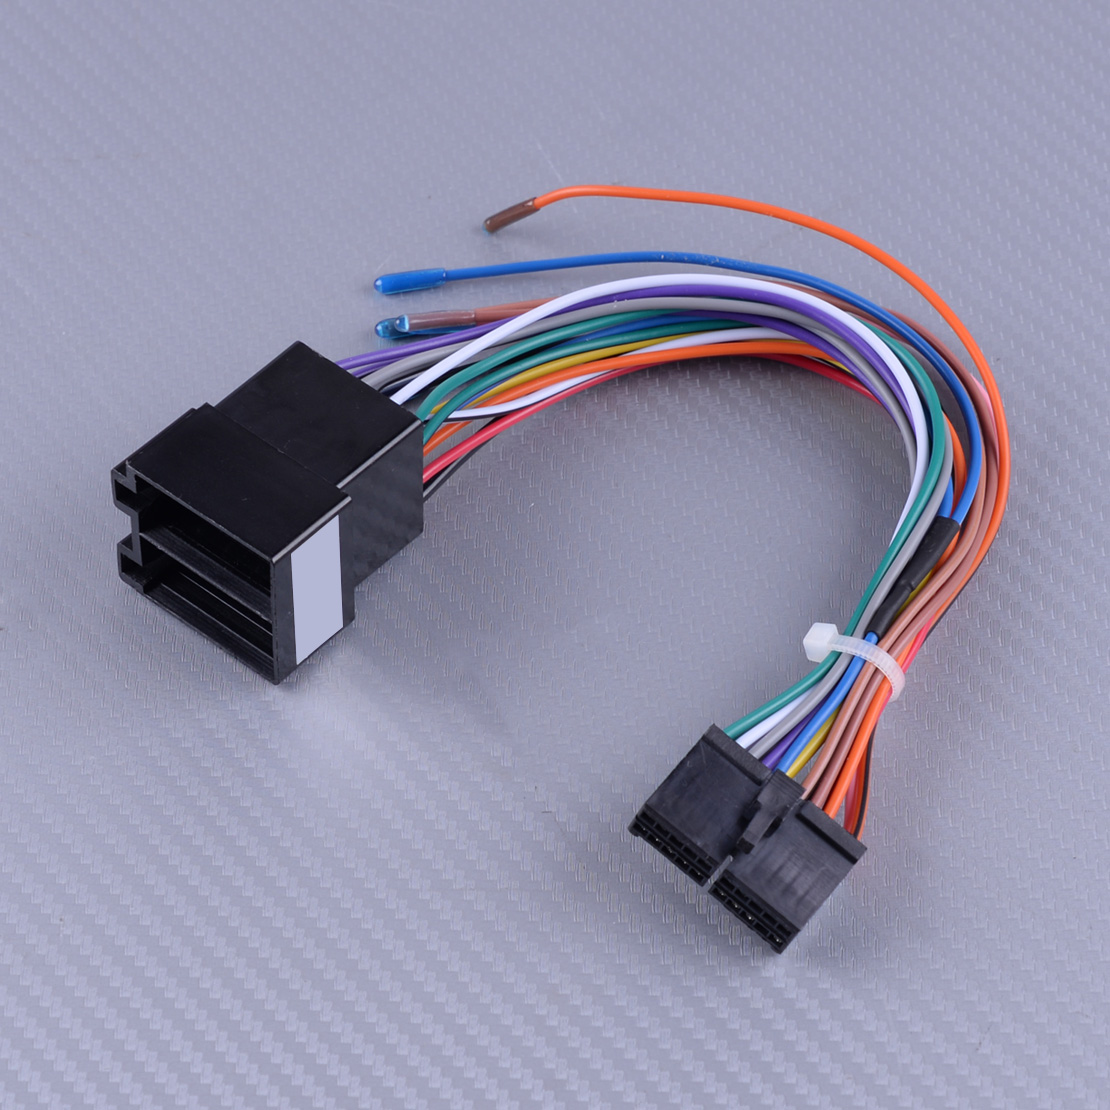 DWCX <font><b>20</b></font> <font><b>Pins</b></font> Plastic ISO Wiring Harness <font><b>Connector</b></font> Adaptor Fit For ISO Android <font><b>Car</b></font> Stereo Lead image